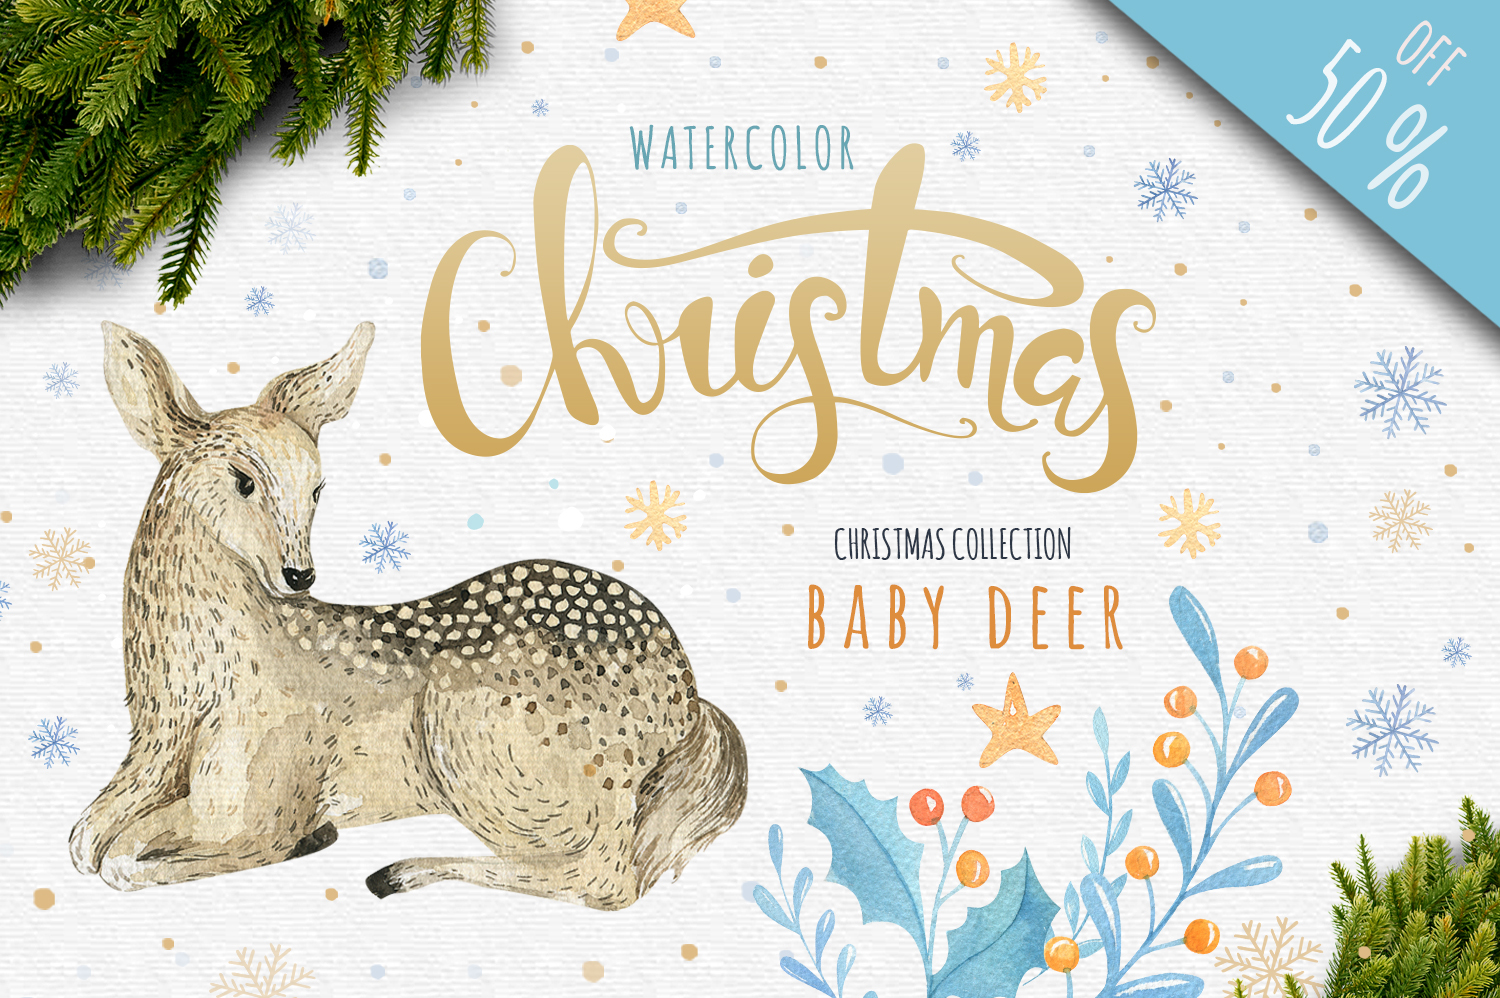 Watercolour baby deer example image 1